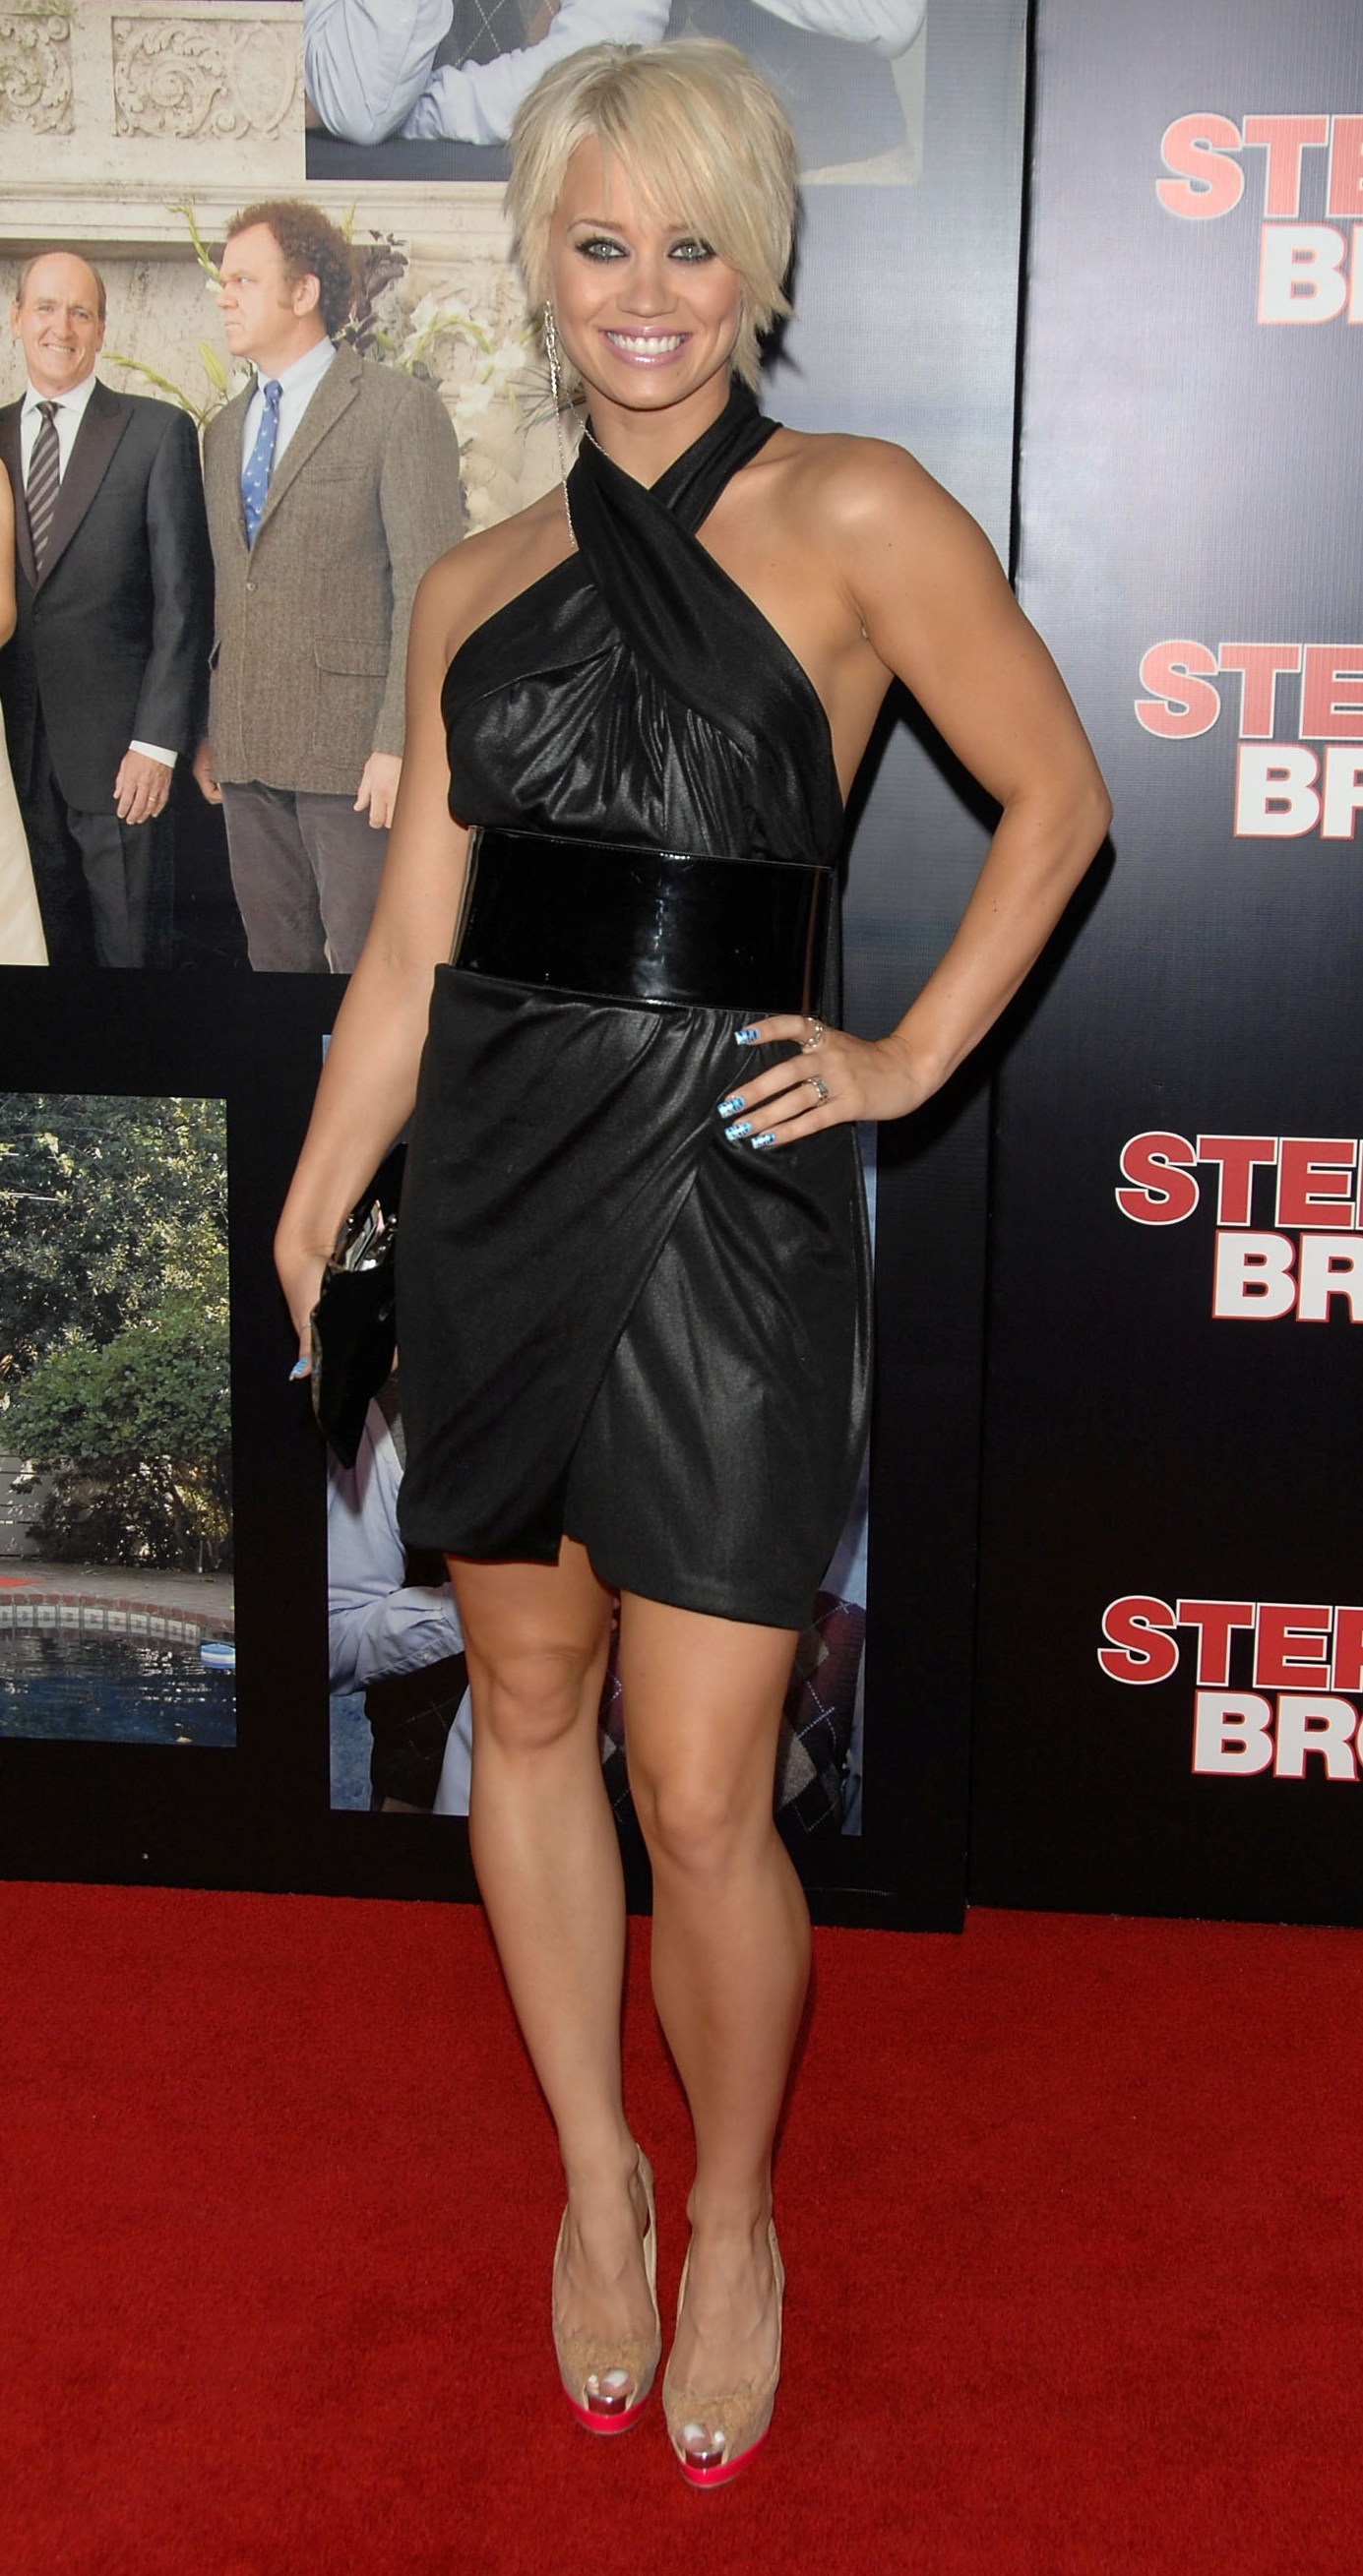 """WESTWOOD, CA - JULY 15: attends the premiere of Sony Pictures' """"Step Brothers"""" at the Mann Village Theater on July 15, 2008 in Westwood, California. (Photo by Stephen Shugerman/Getty Images)"""